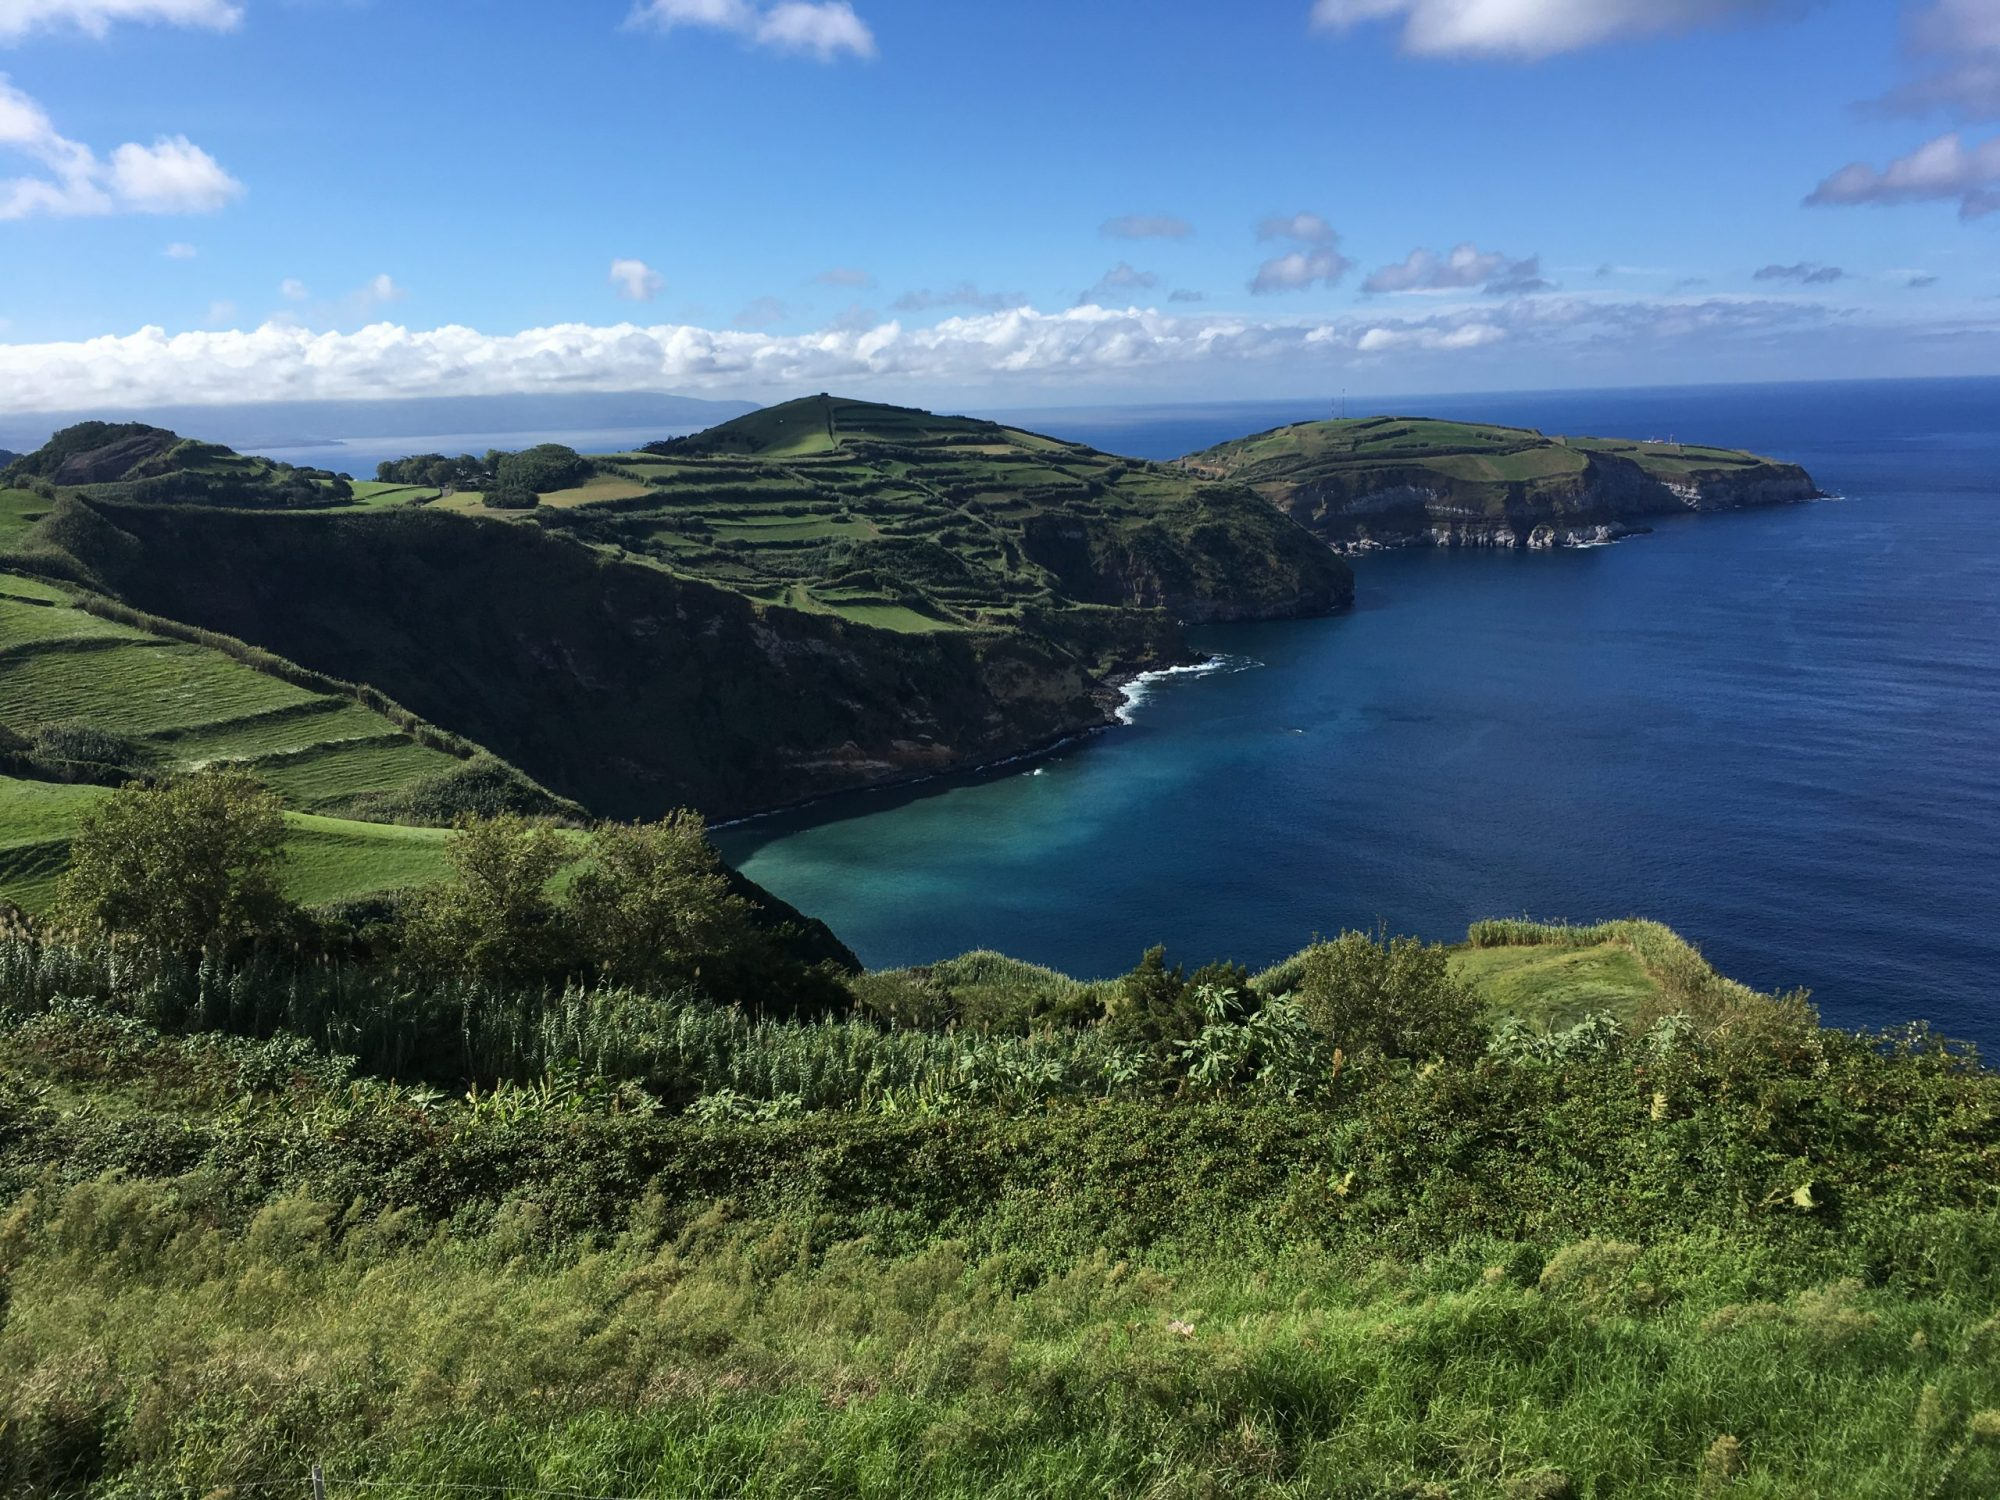 View from Sao Miguel in the Azores from Amanda Walkins